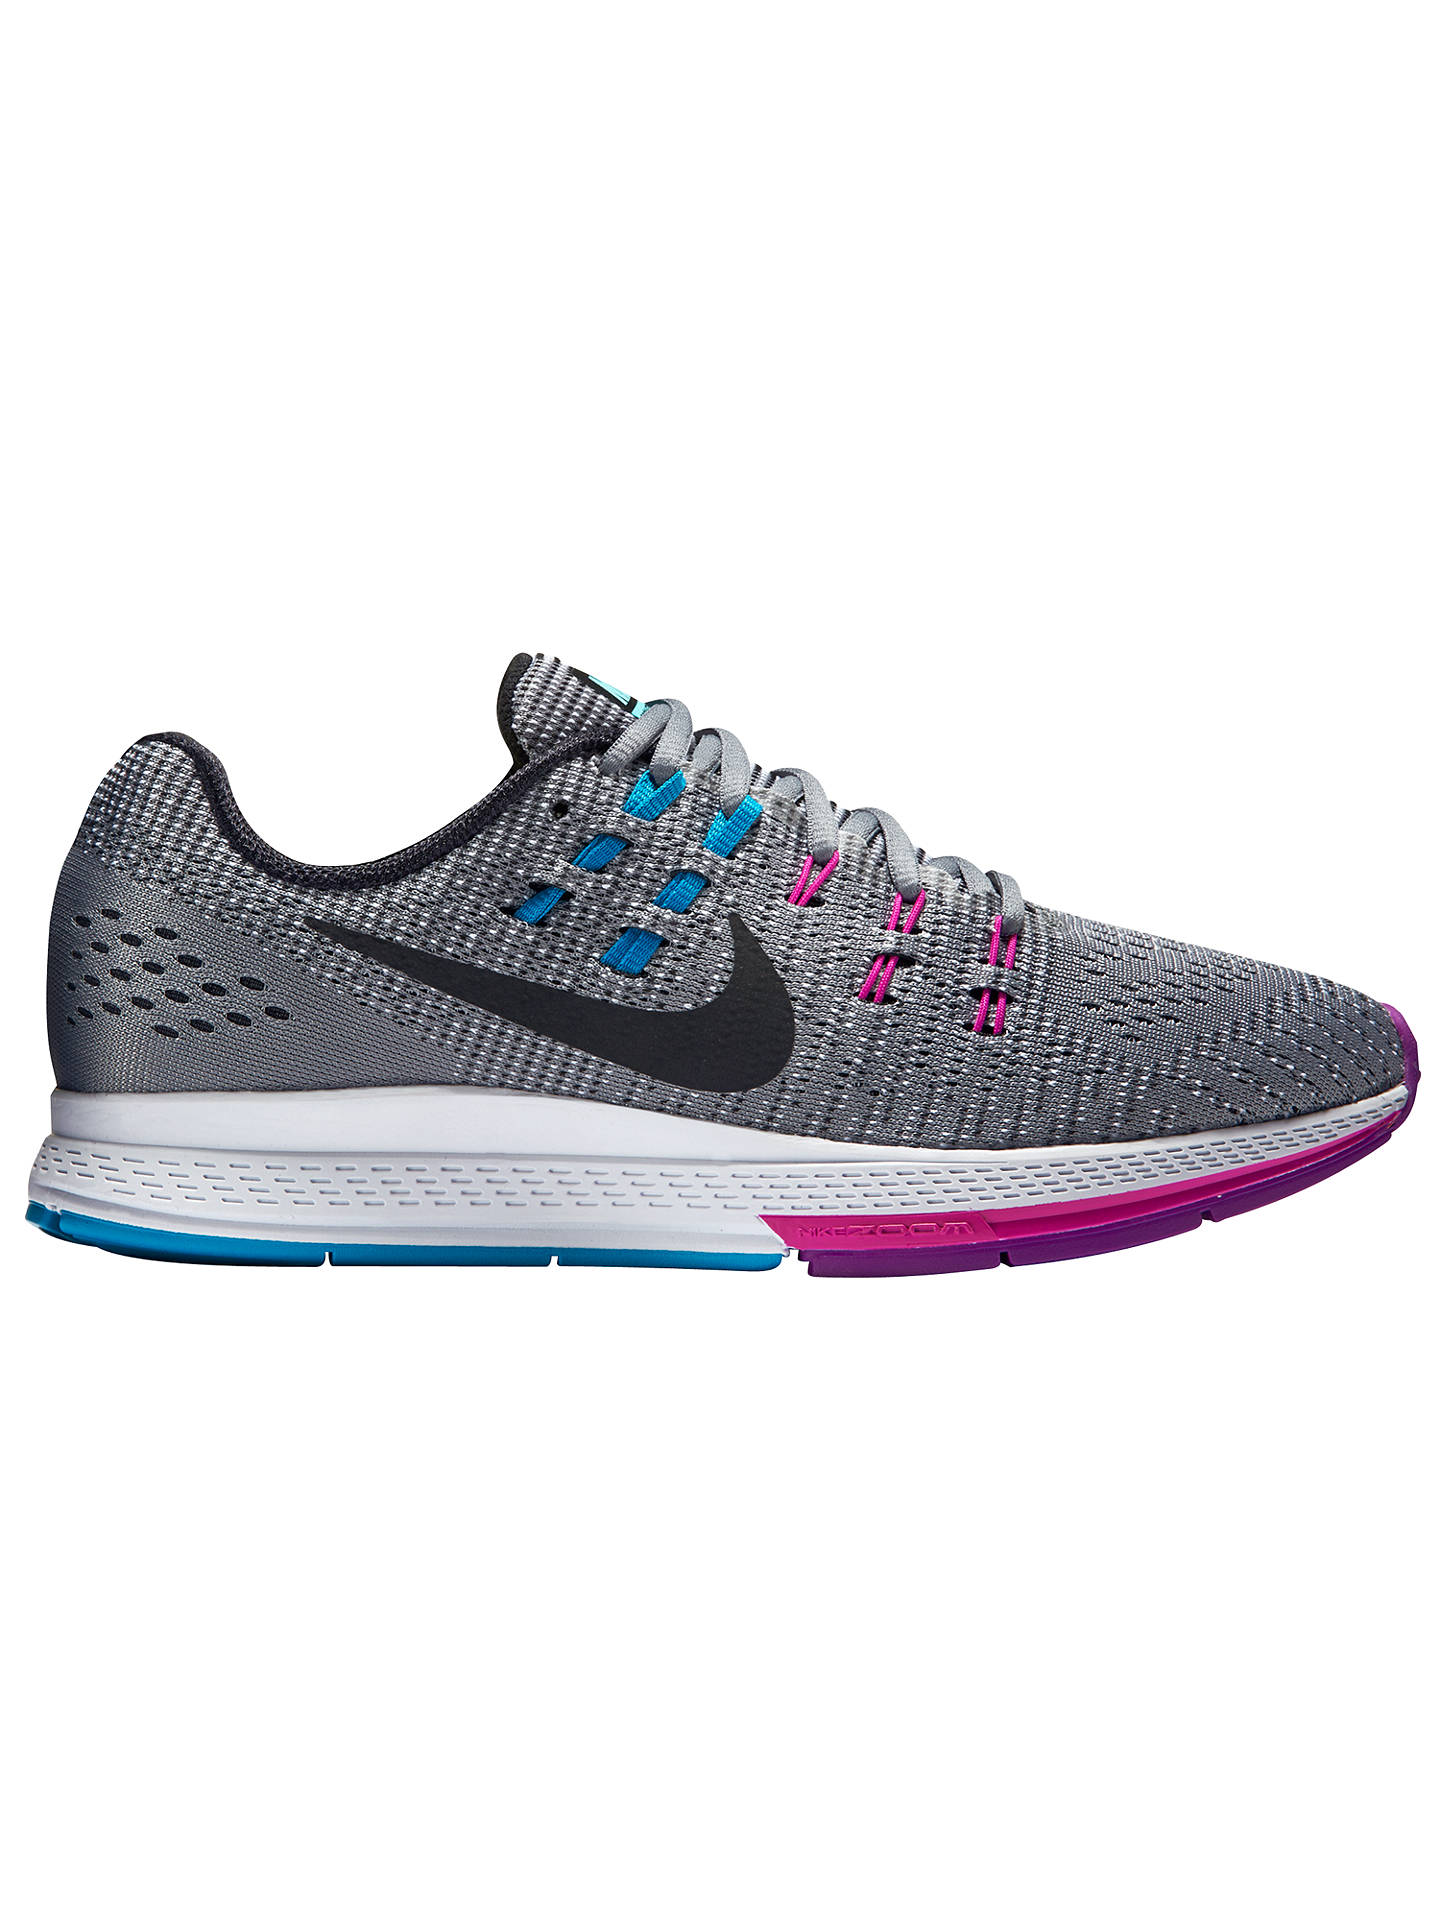 5bdcf0521cc74 Nike Air Zoom Structure 19 Women s Running Shoes at John Lewis ...